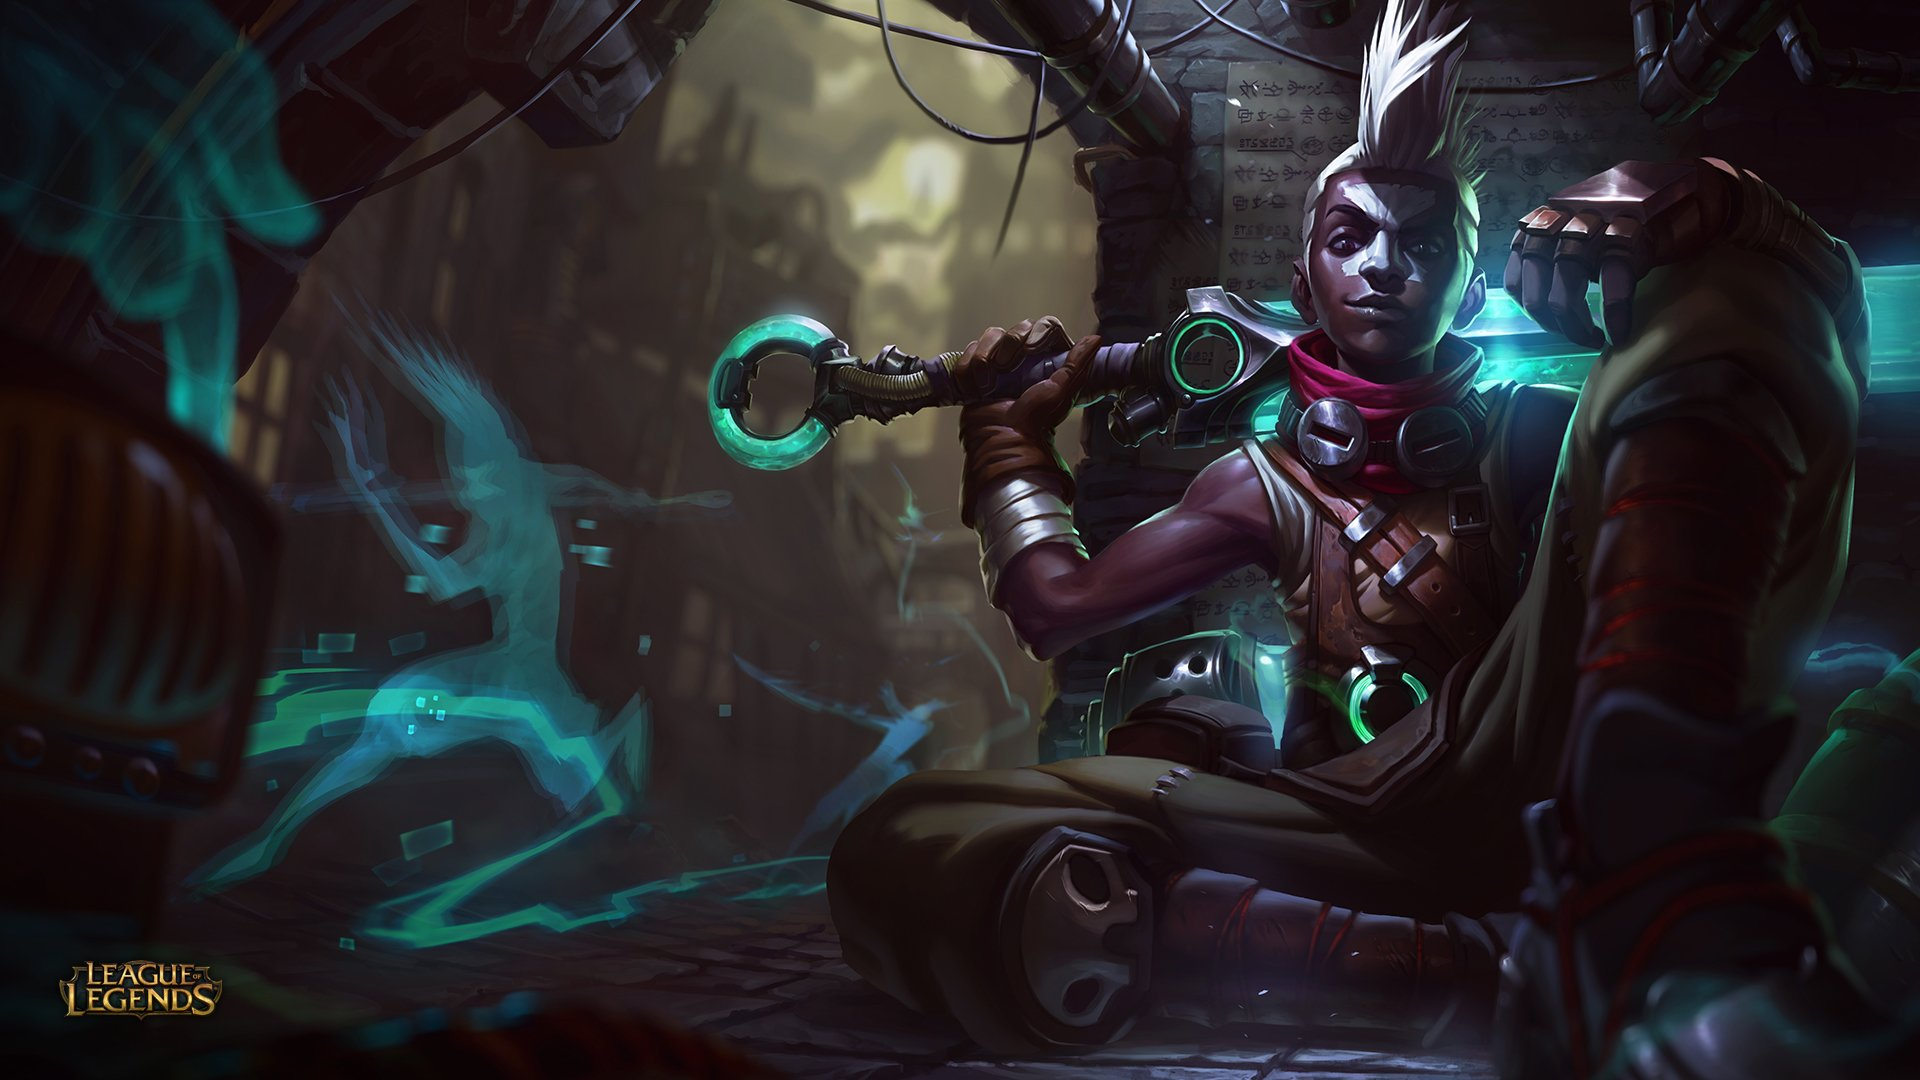 17 Ekko League Of Legends Fondos De Pantalla Hd Fondos